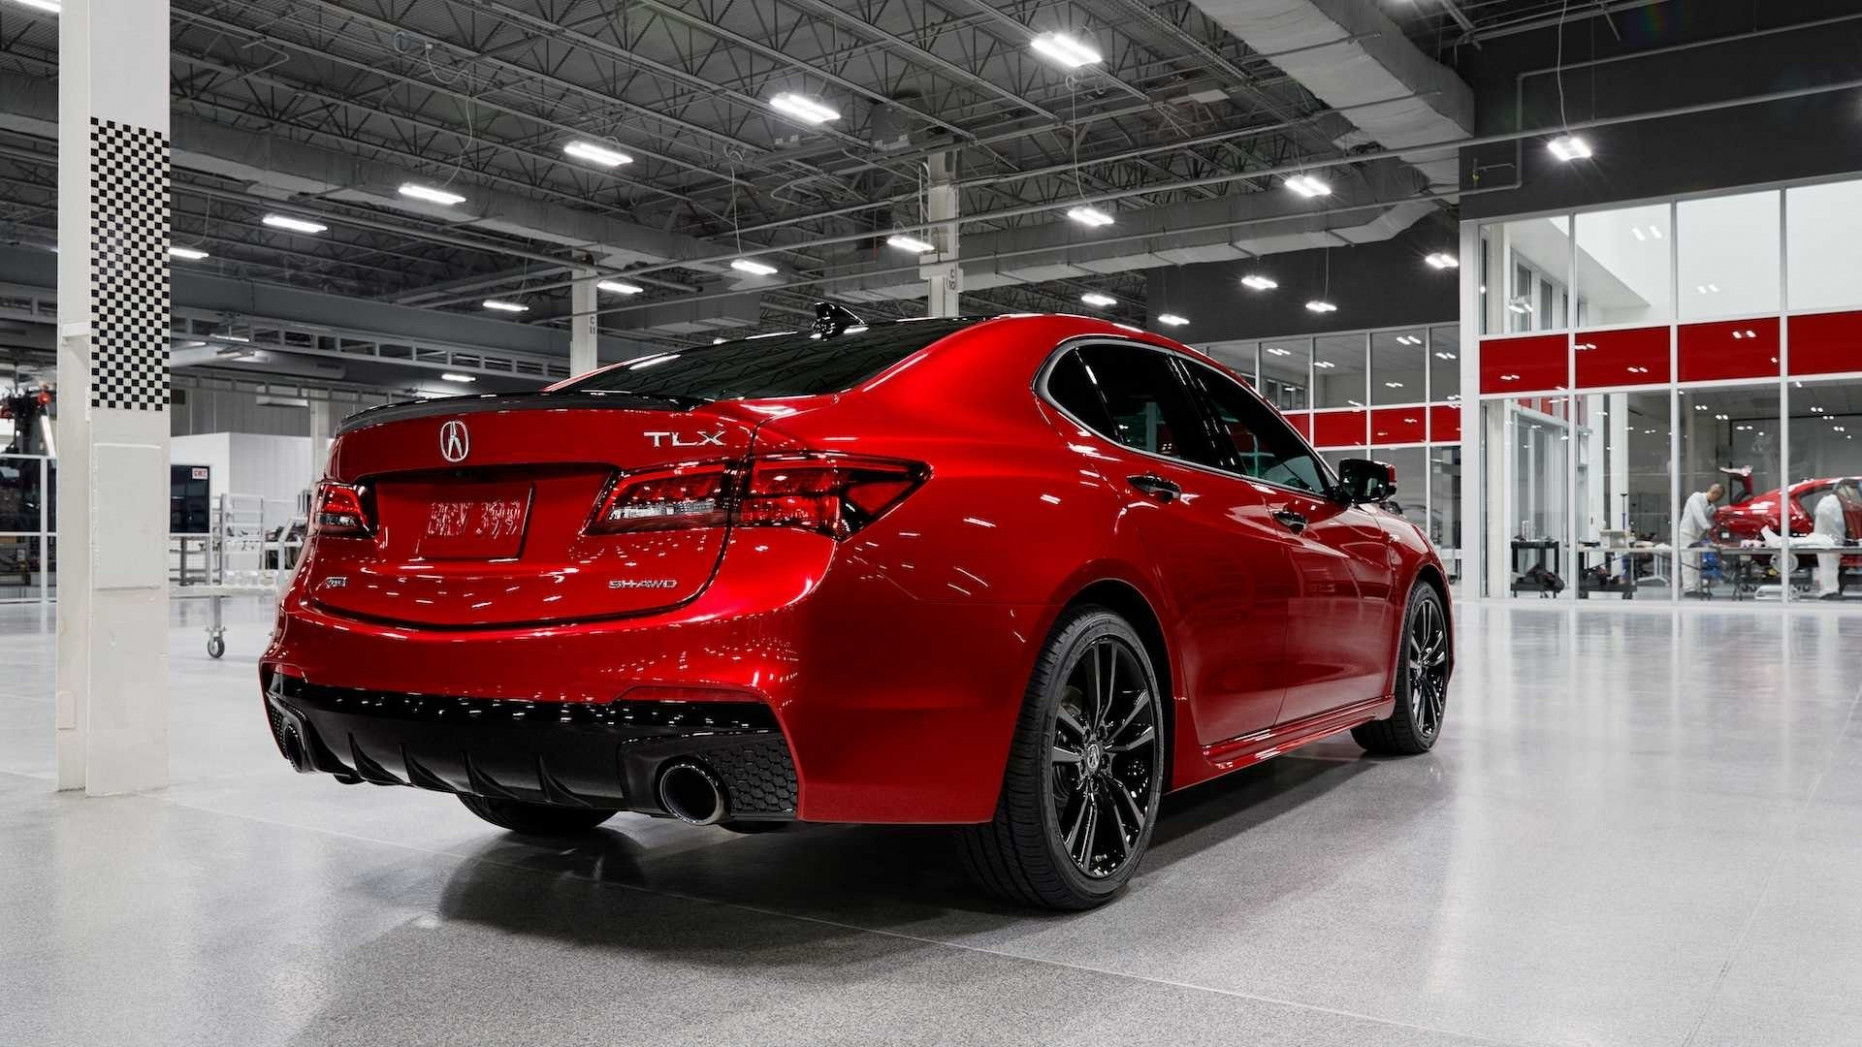 How to Order a 8 Acura Tlx Pmc Edition Price | Acura, Best new cars